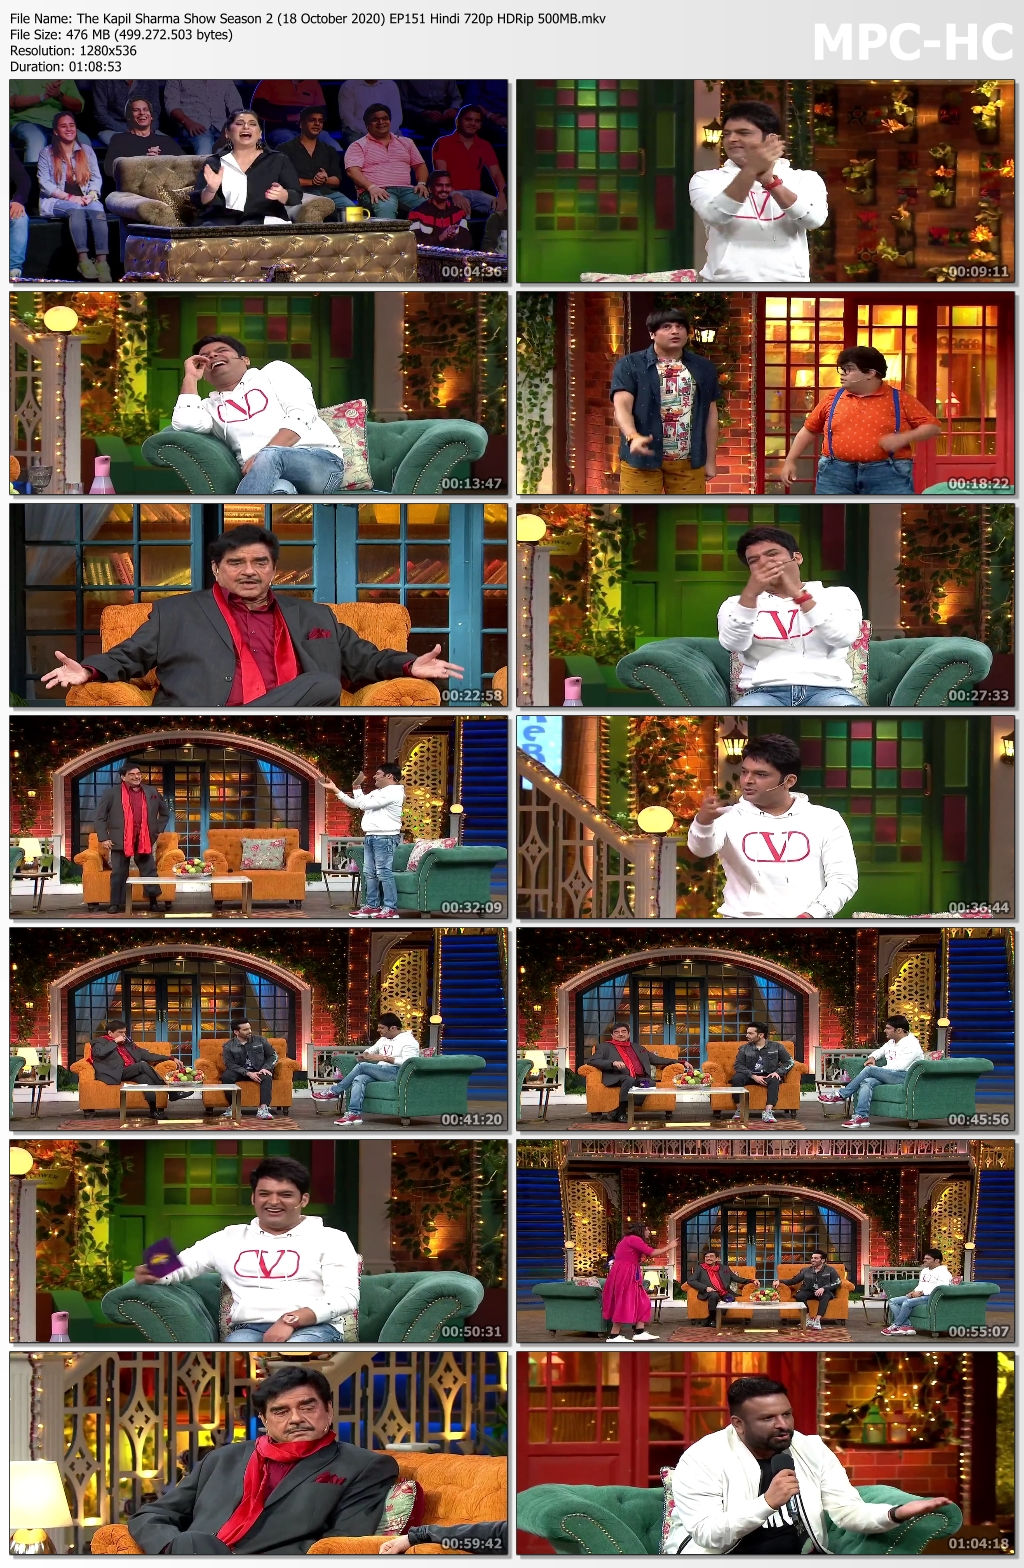 The-Kapil-Sharma-Show-Season-2-18-October-2020-EP151-Hindi-720p-HDRip-500-MB-mkv-thumbs